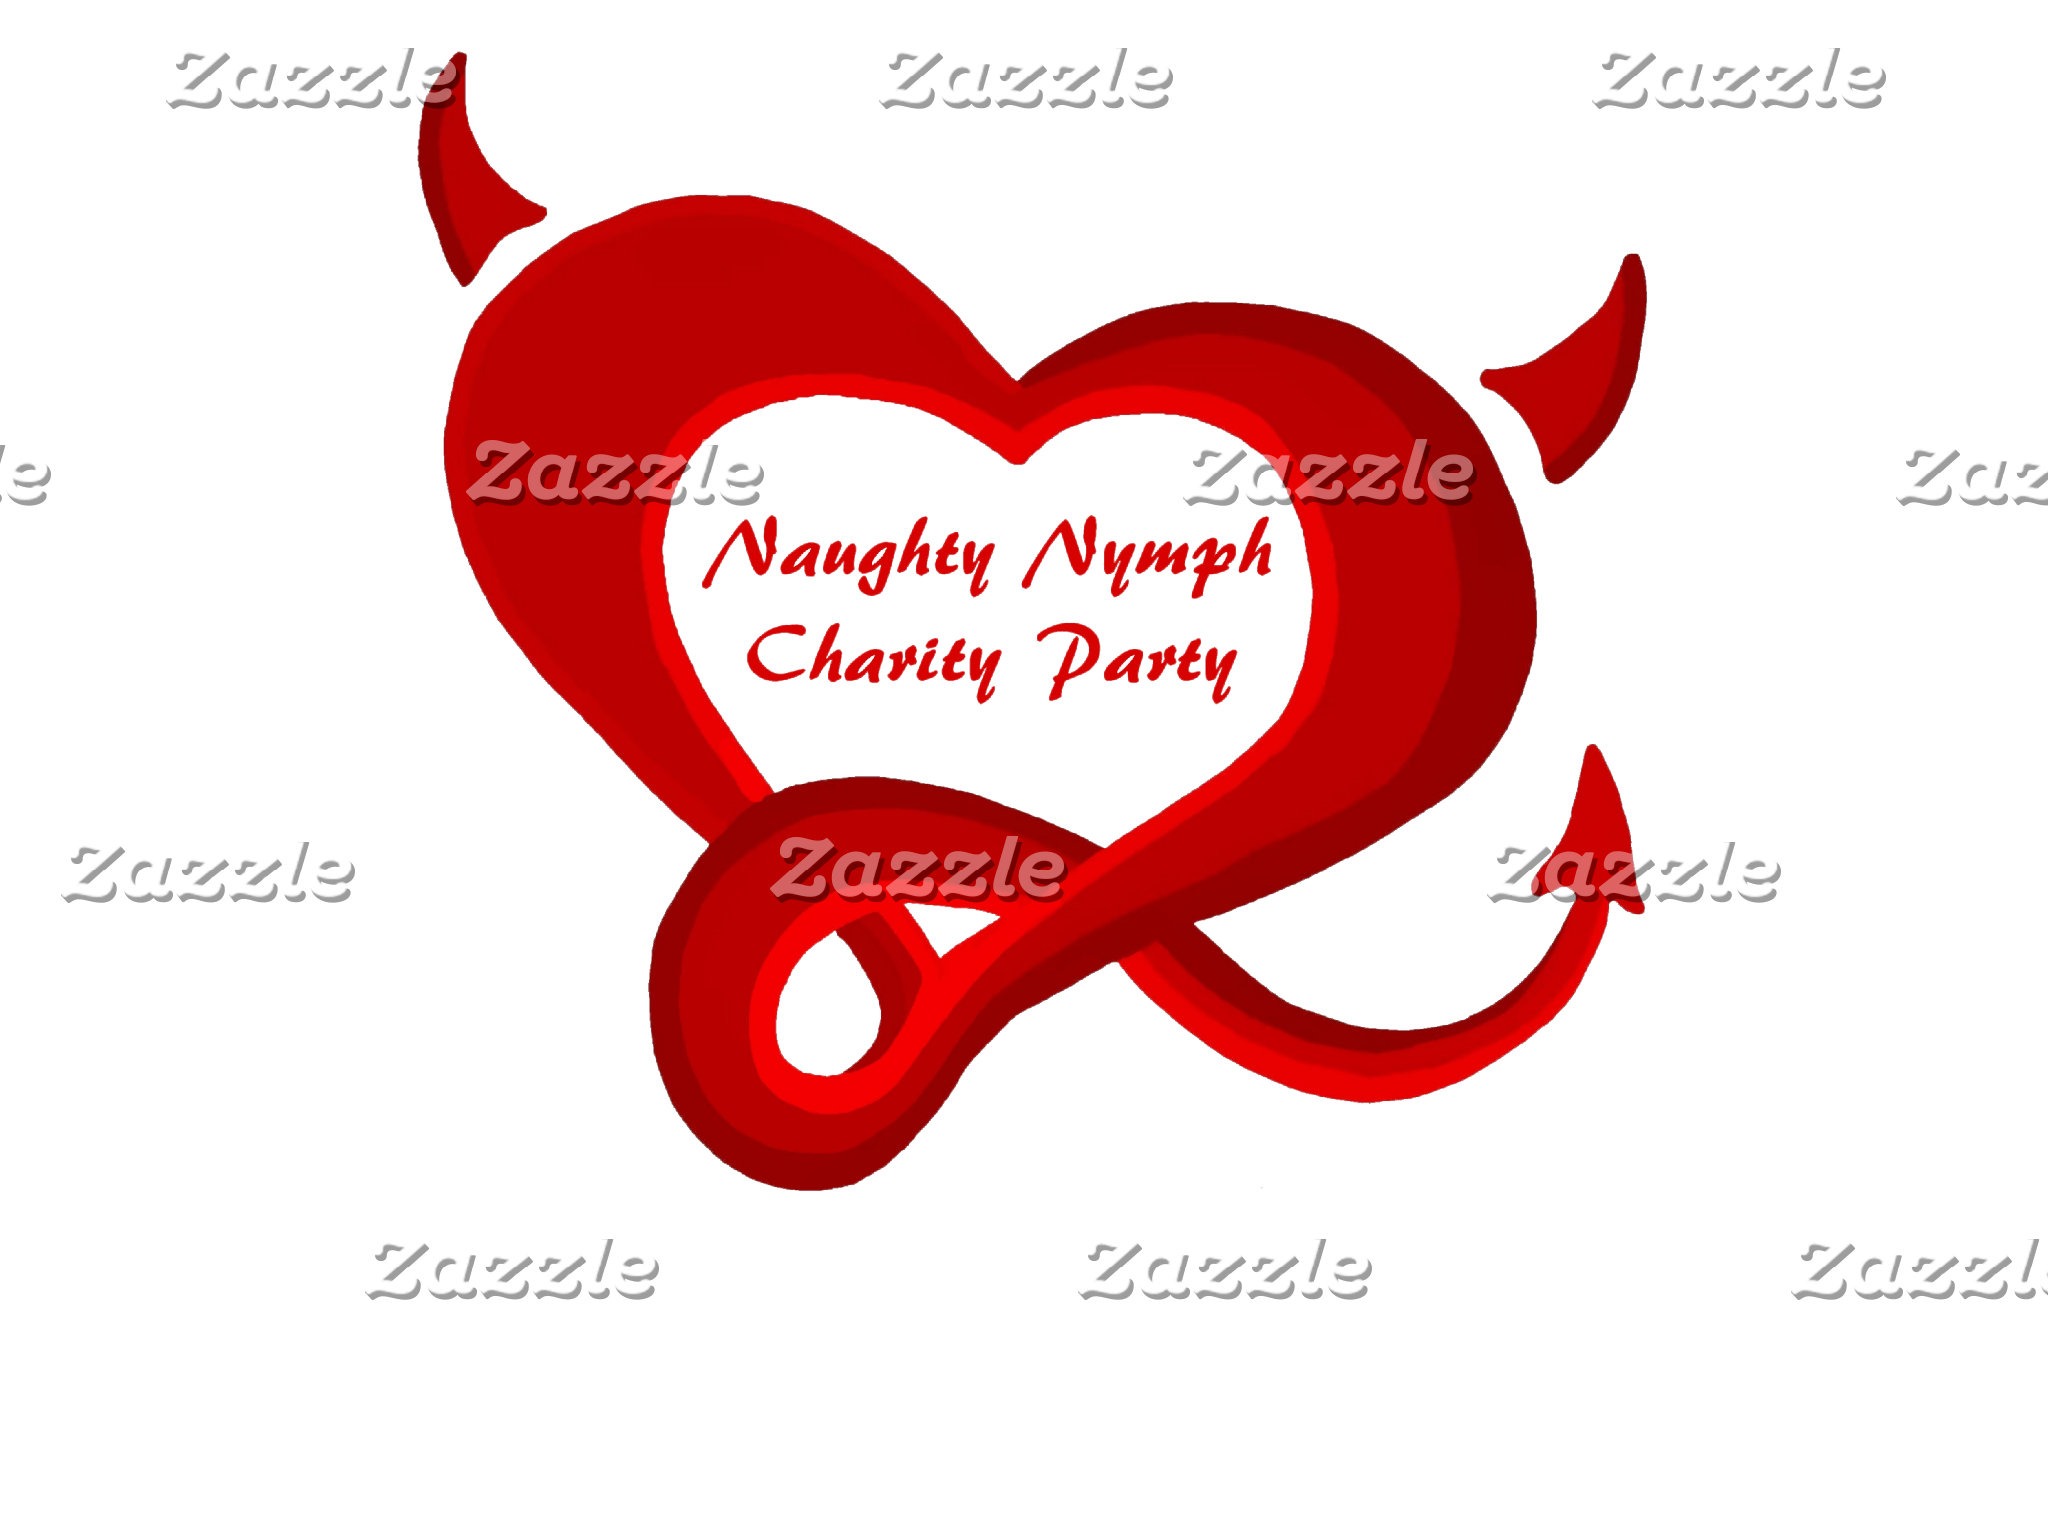 Naughty Nymph Charity Party